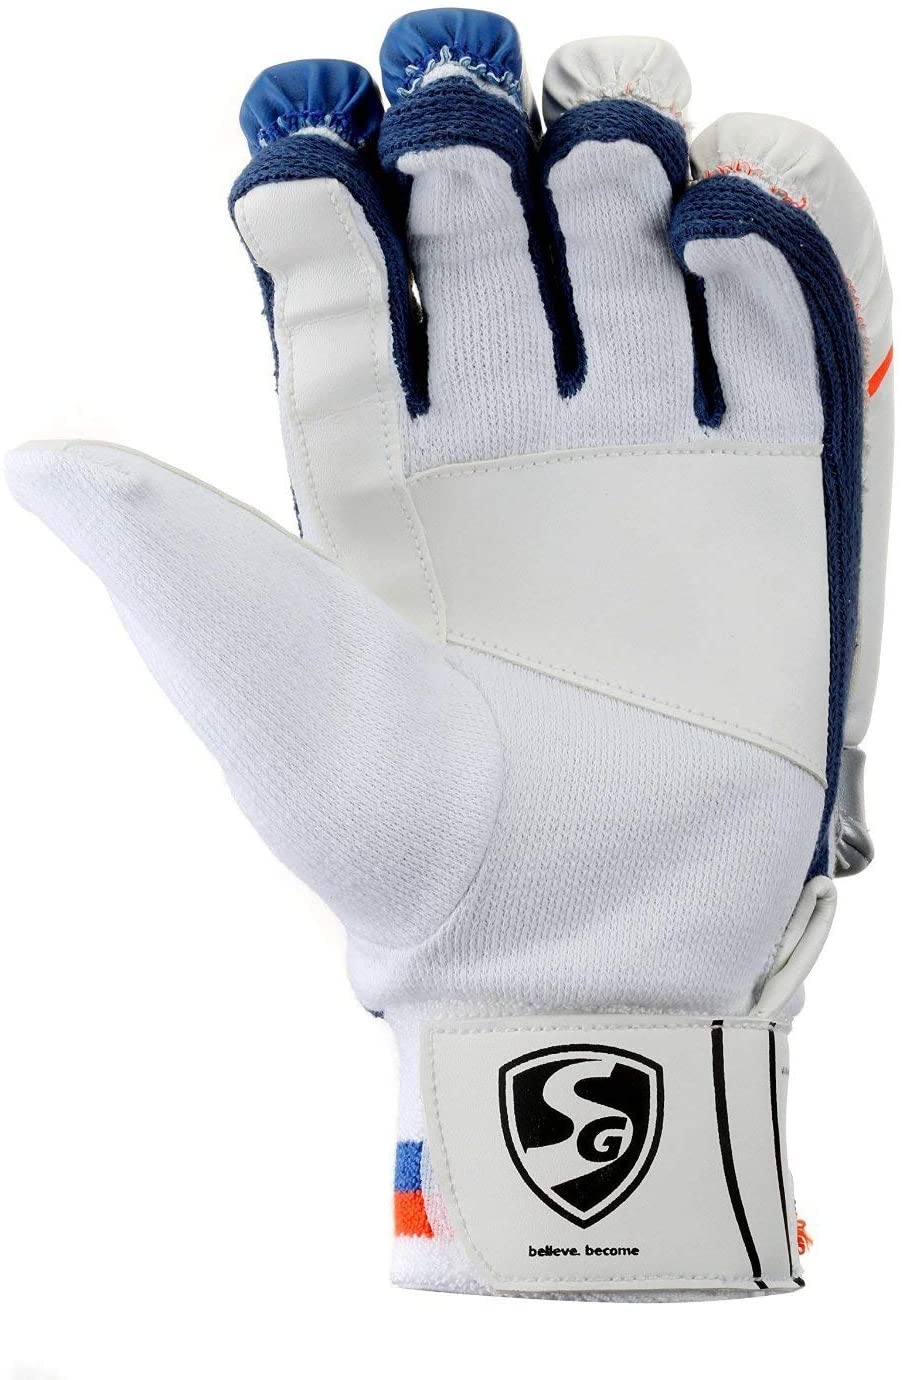 SG Campus Cricket Batting Gloves for Boys